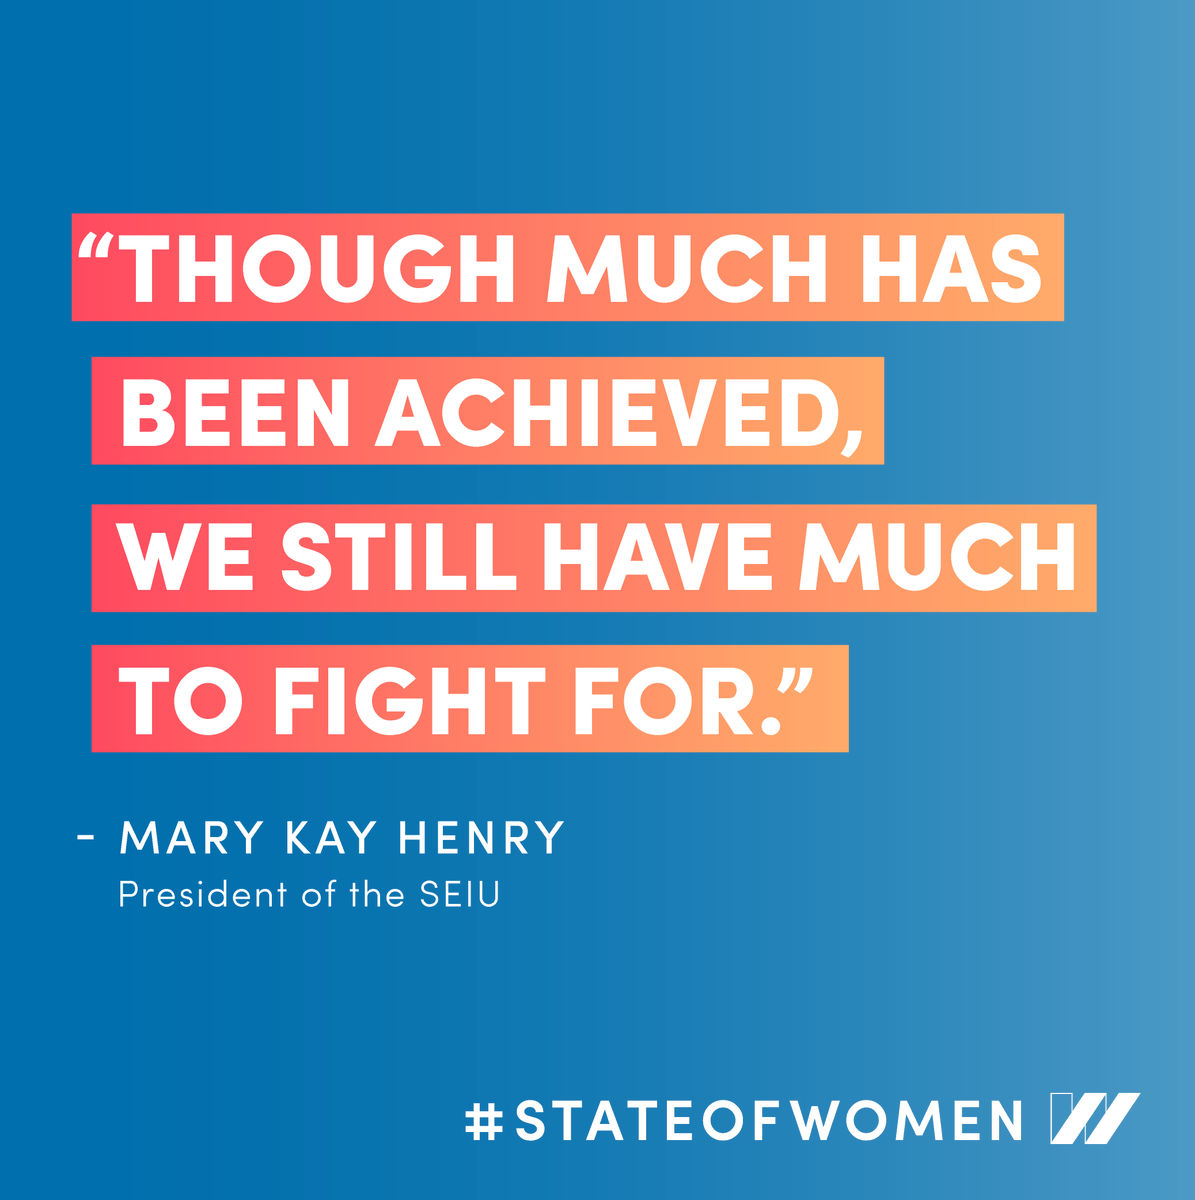 How working women are behind the most dynamic labor movement of our lifetimes: https://t.co/TzEkD5GE1w #StateOfWomen https://t.co/jVAiIwSlhV